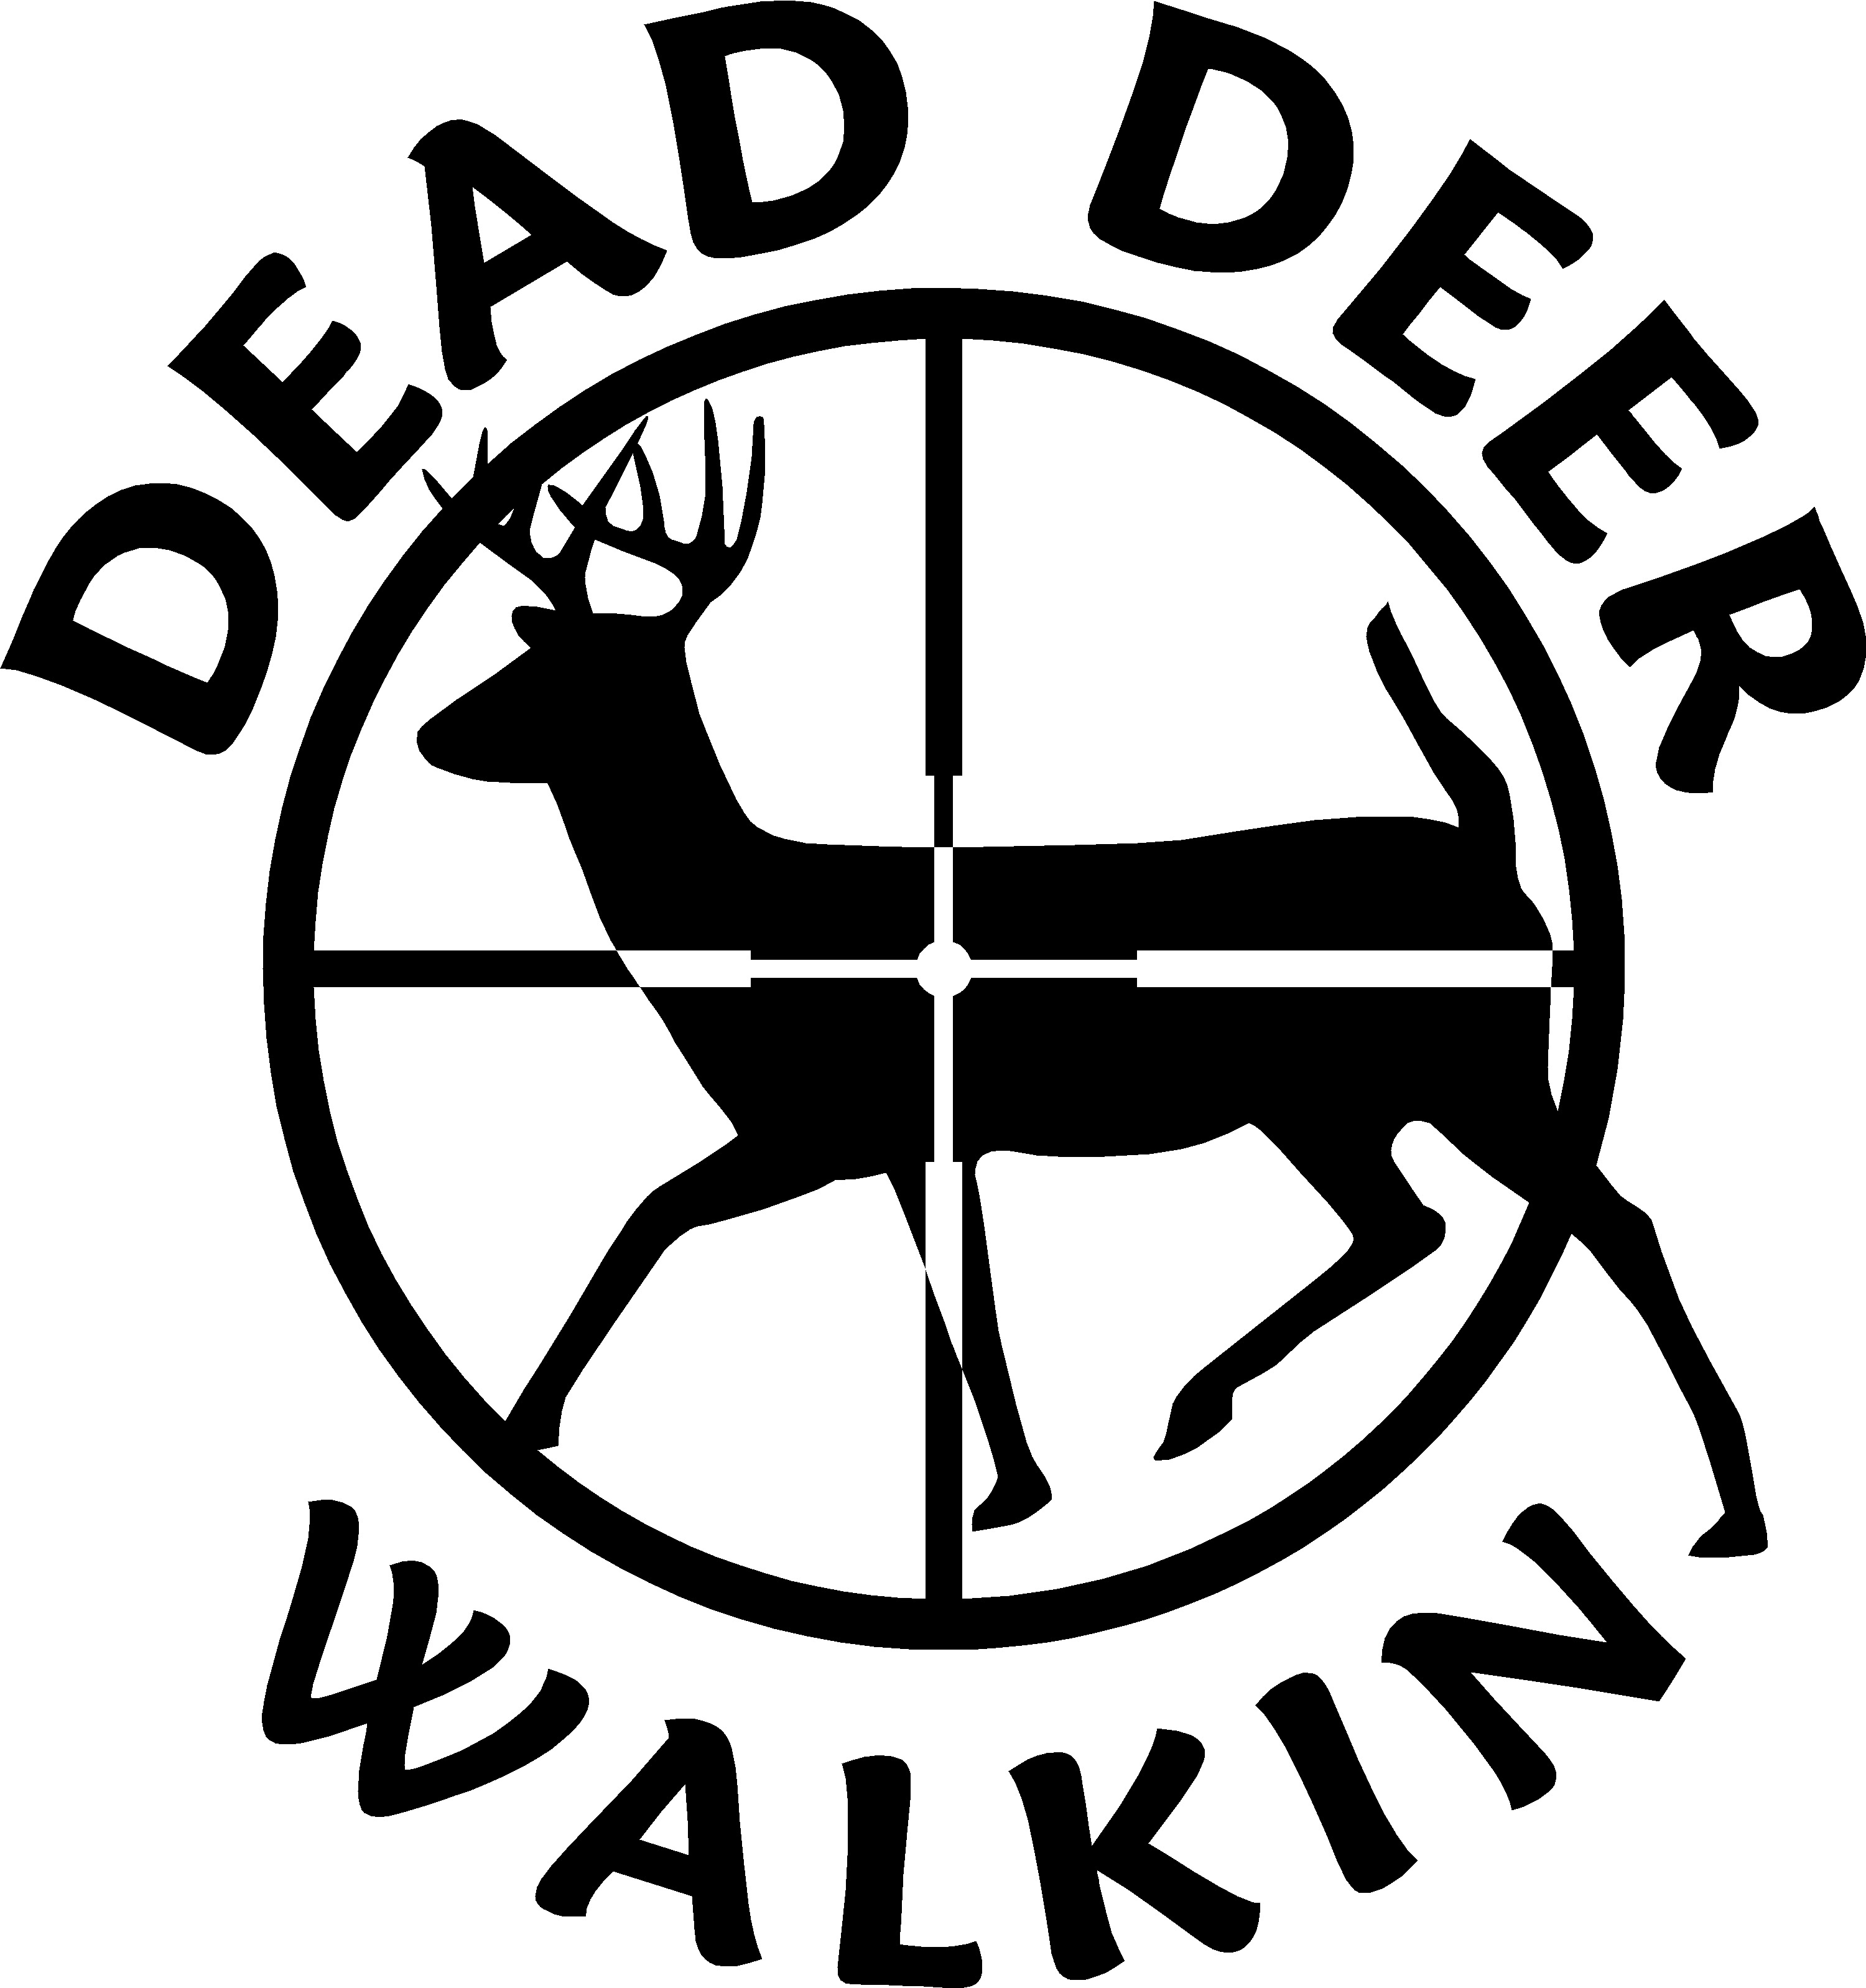 Drawn hunting deer logo Walkin Dead 15010 Decals and